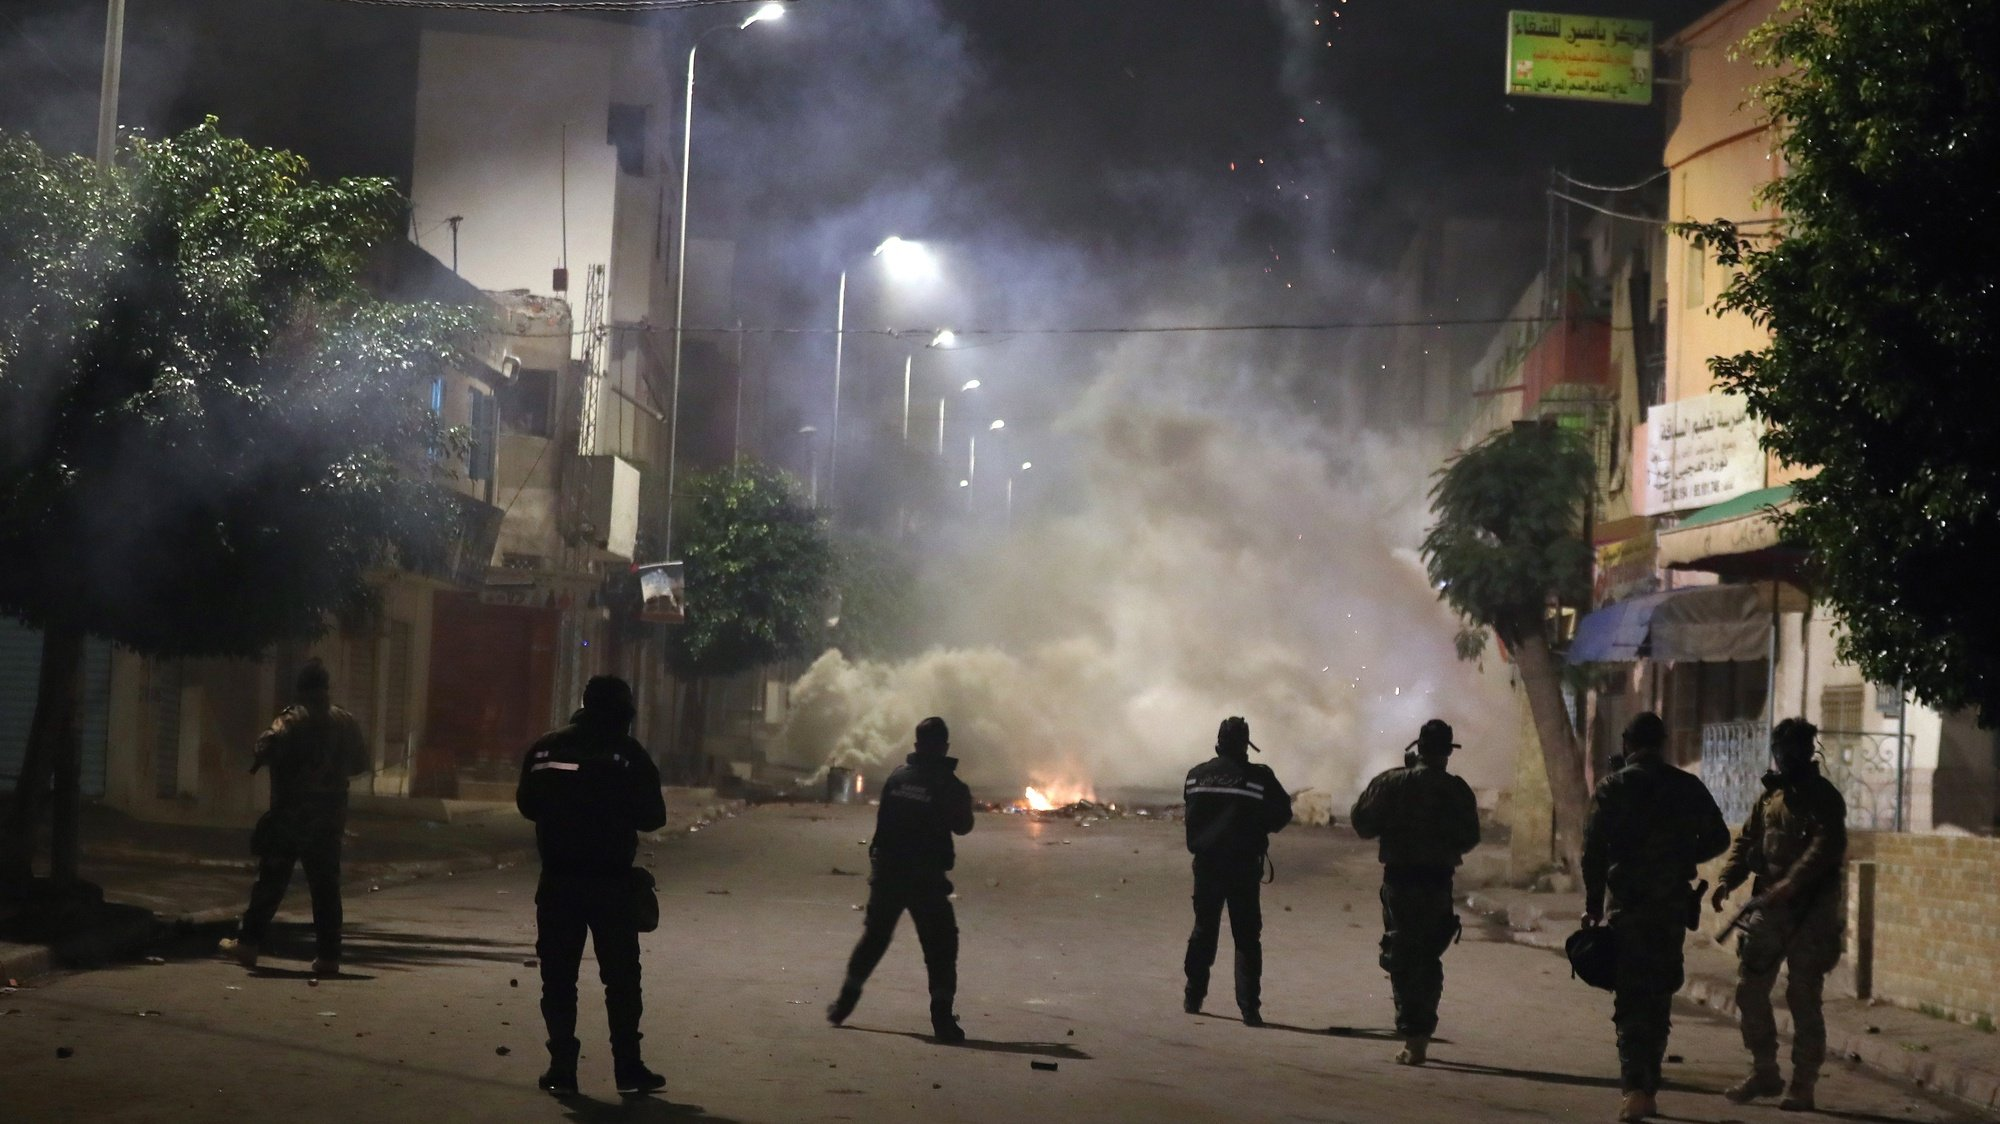 epa08950527 Security forces clash with demonstrators during anti-government protests in Tunis, Tunisia, 19 January 2021. A wave of nocturnal demonstrations has rocked the country since 16 January.  EPA/MOHAMED MESSARA